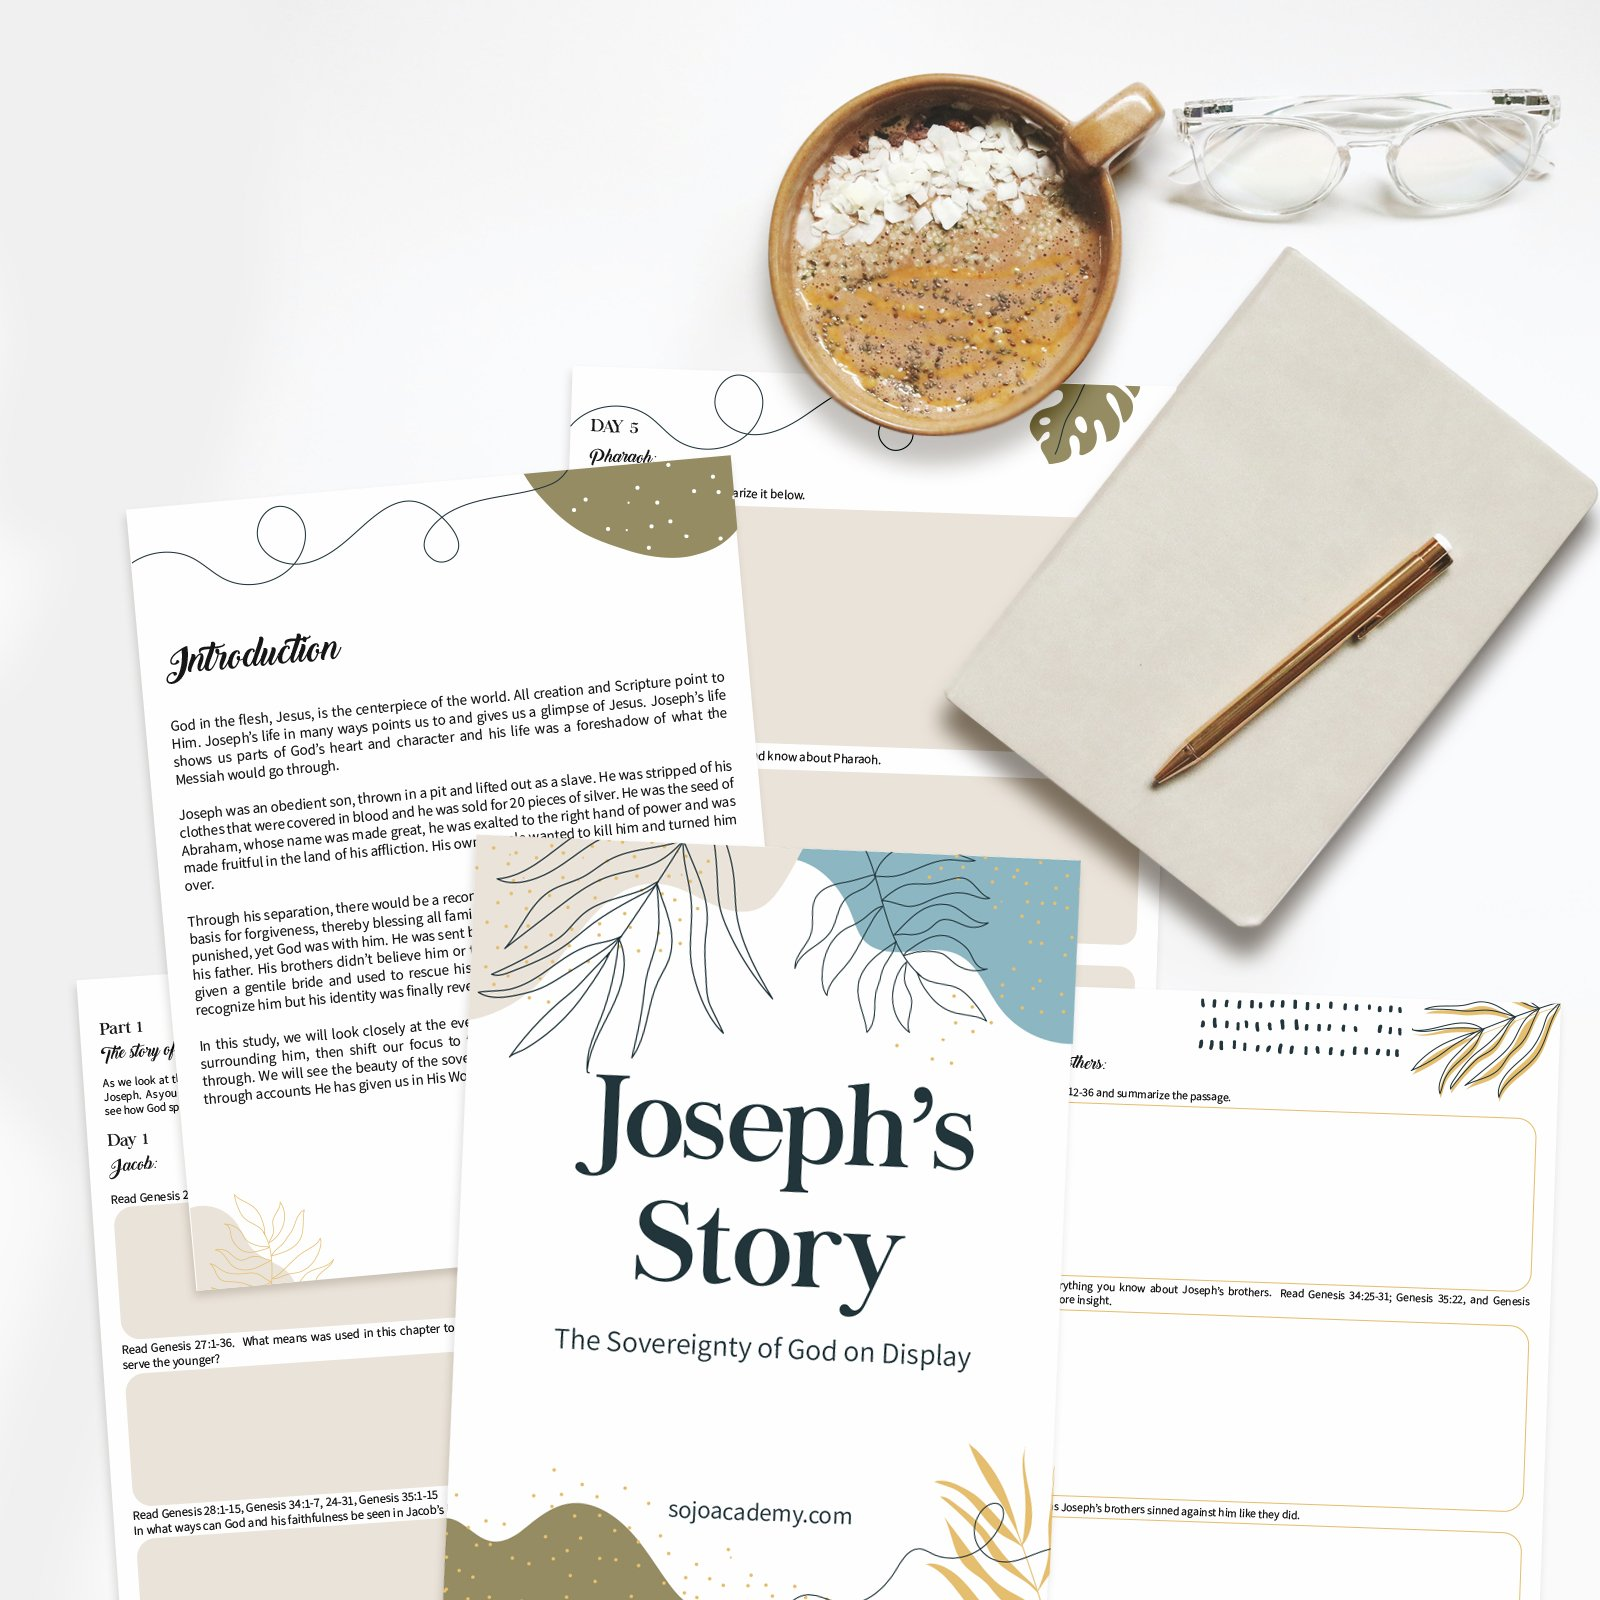 Joseph's Story The Sovereignty of God on Display